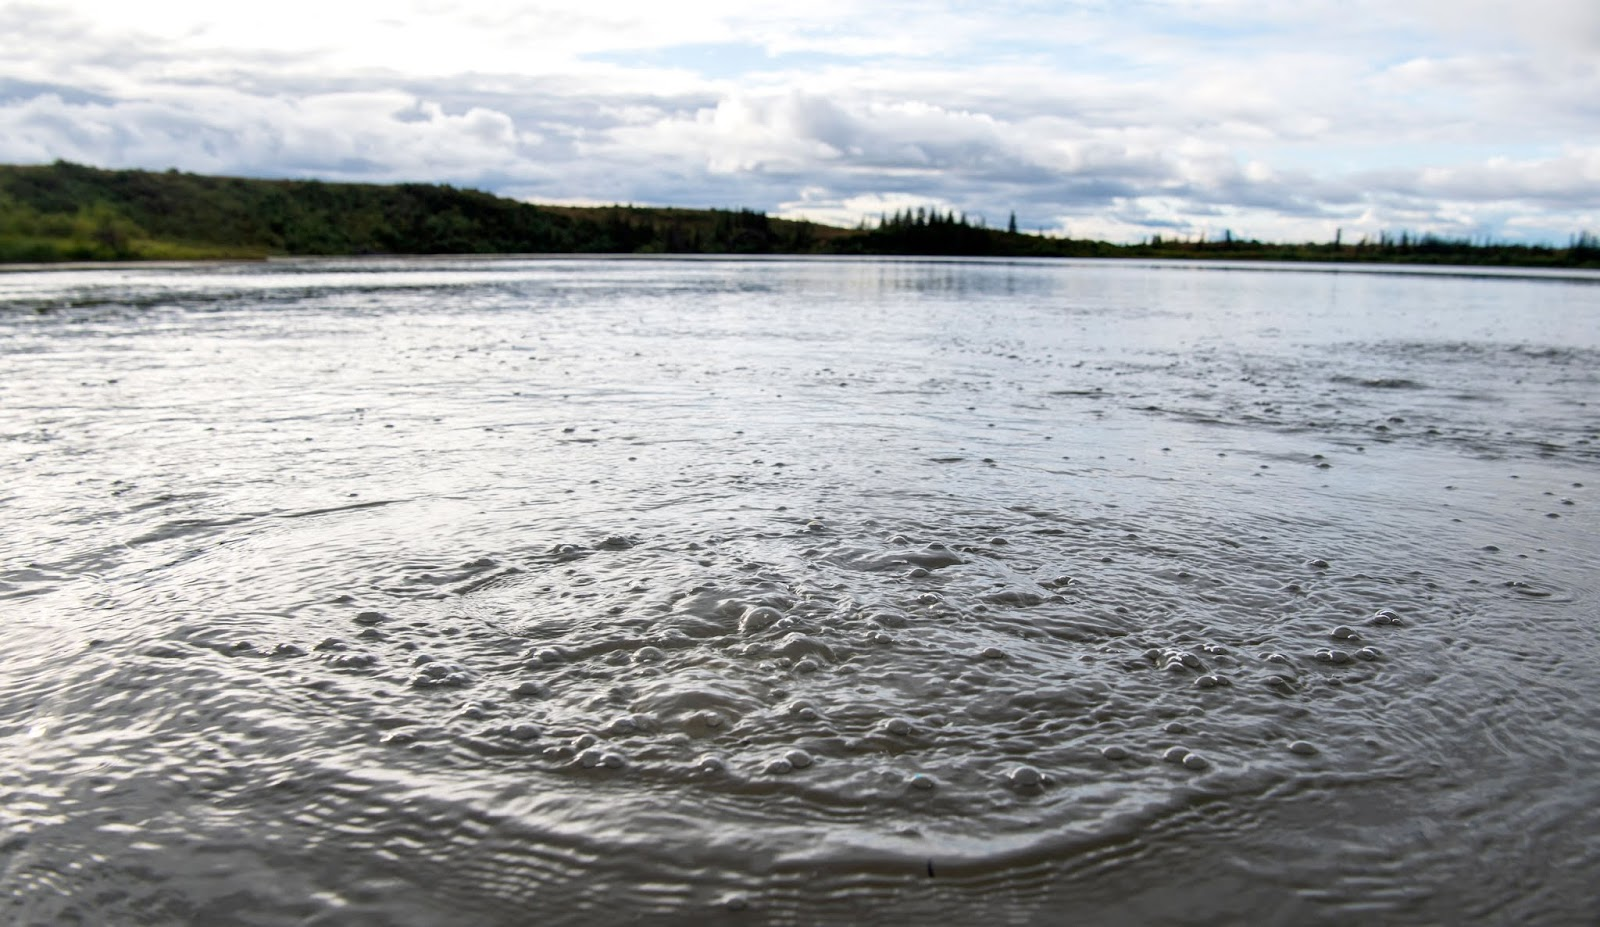 across the arctic lakes are leaking dangerous greenhouse gases